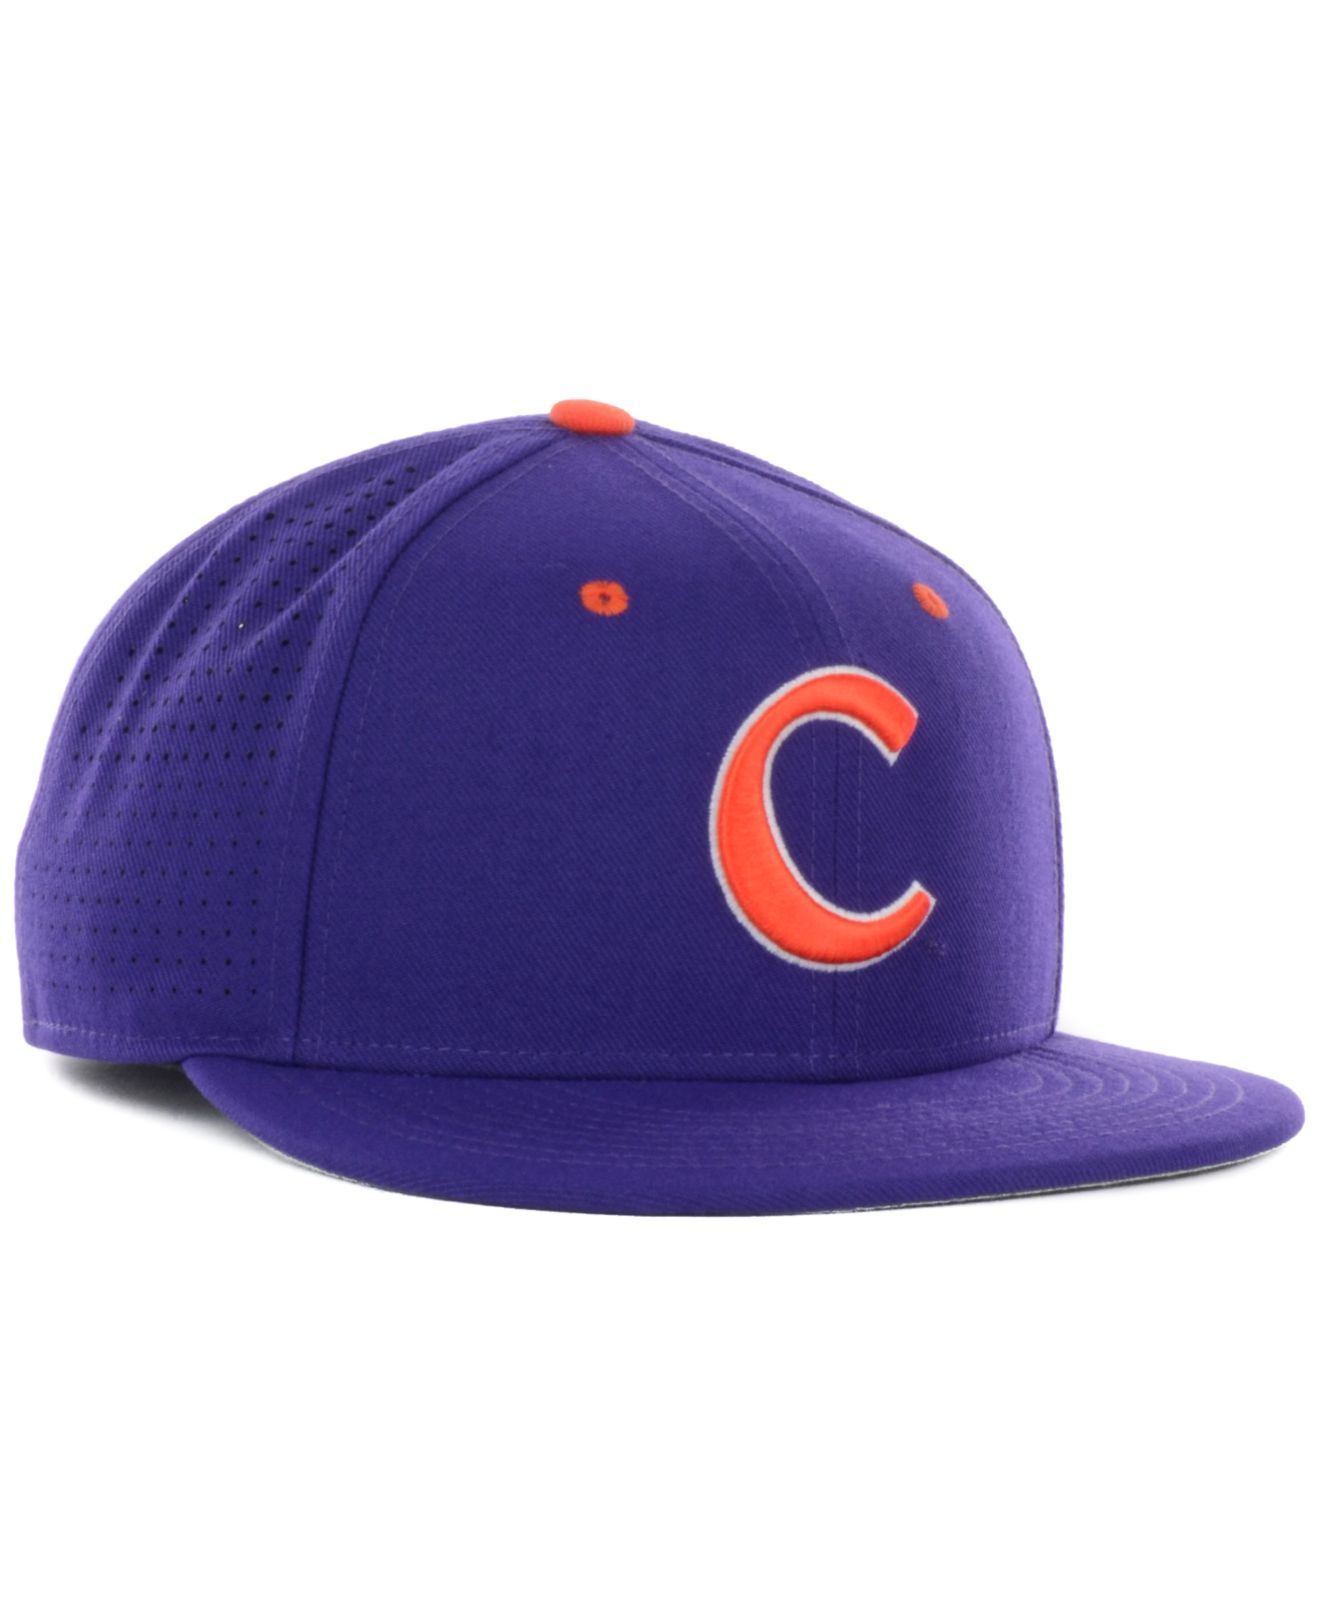 newest 6f098 bab6a ... discount lyst nike clemson tigers authentic vapor fitted cap in purple  for men 7bcba e7179 ...